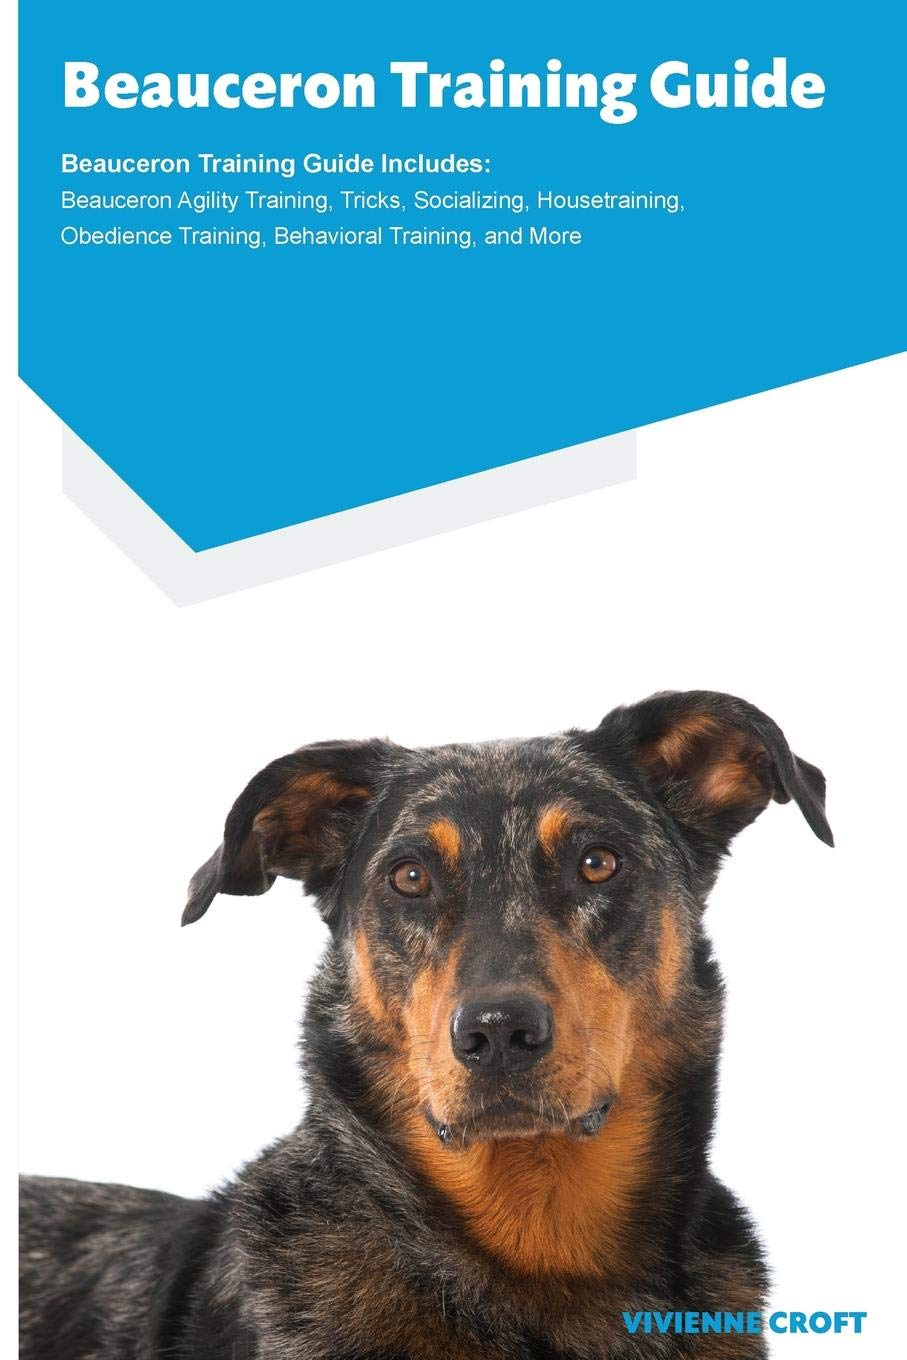 Beauceron Training Guide Beauceron Training Guide Includes: Beauceron Agility Training, Tricks, Socializing, Housetraining, Obedience Training, Behavioral Training, and More